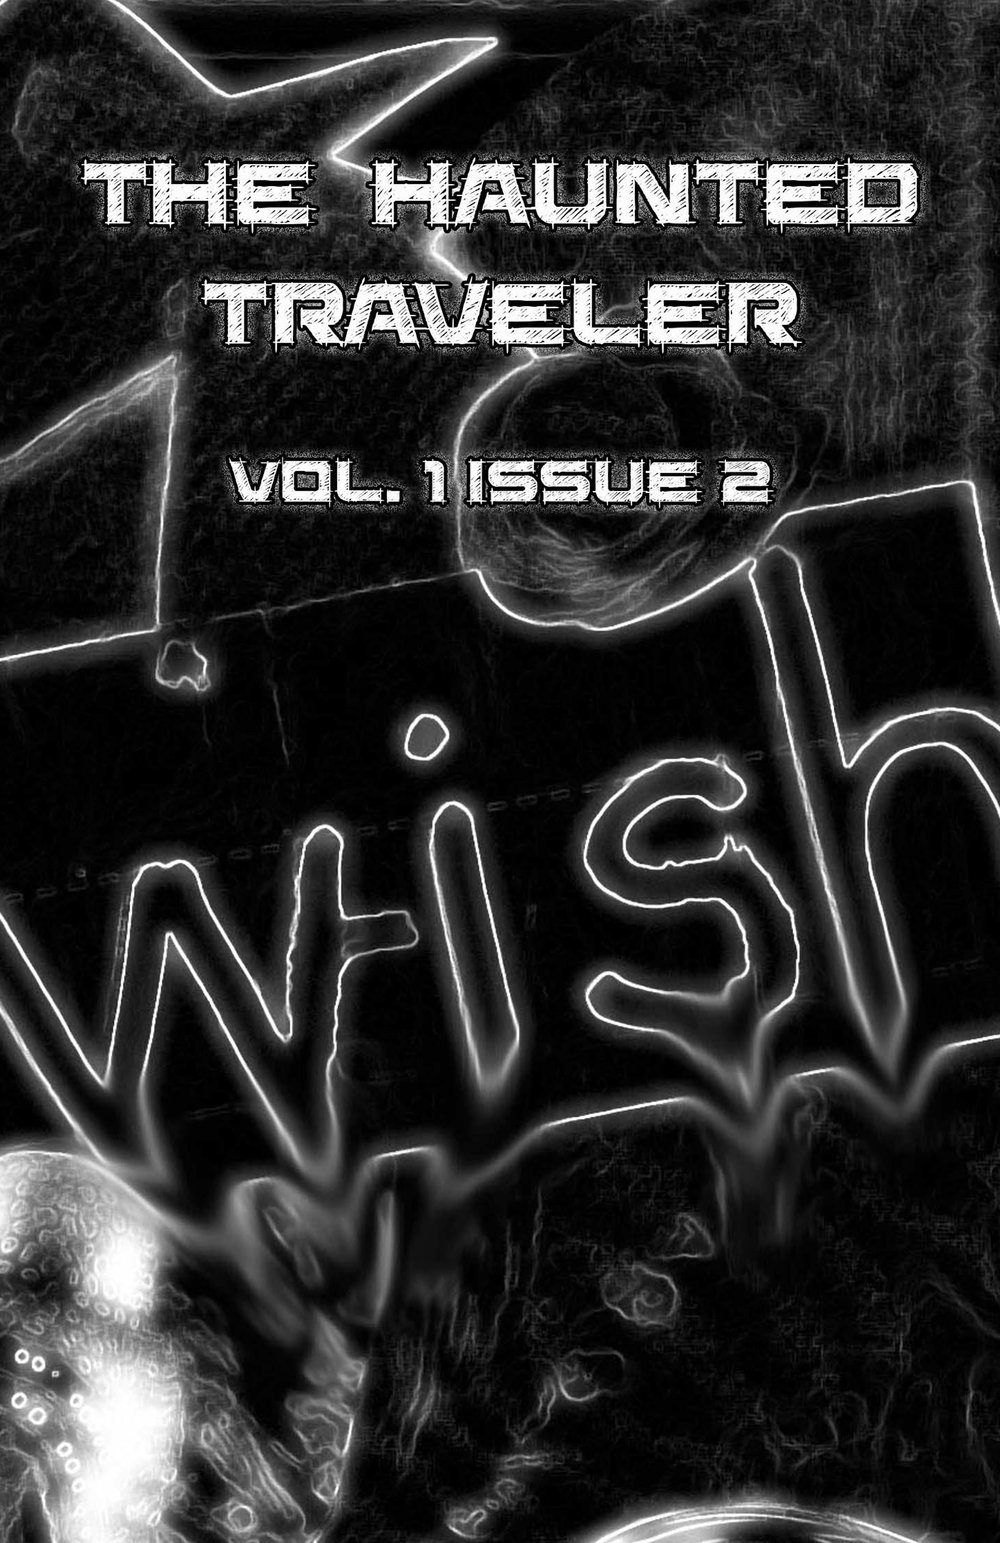 The Haunted Traveler    Vol. I Issue 2